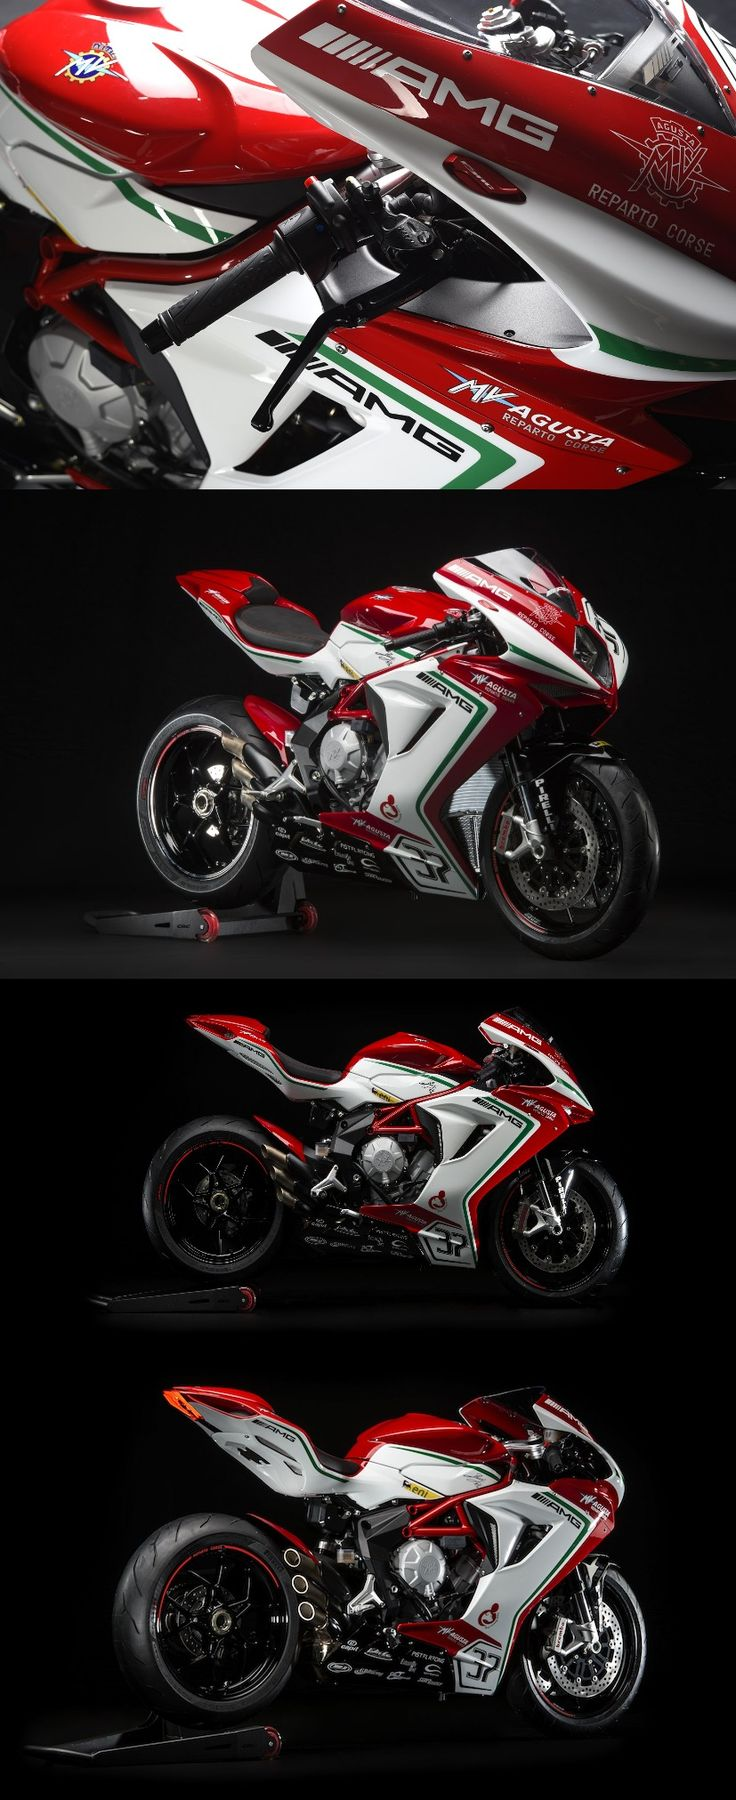 MV Agusta Limited Edition F3 800 RC Hits Showroom Floors in Bengaluru